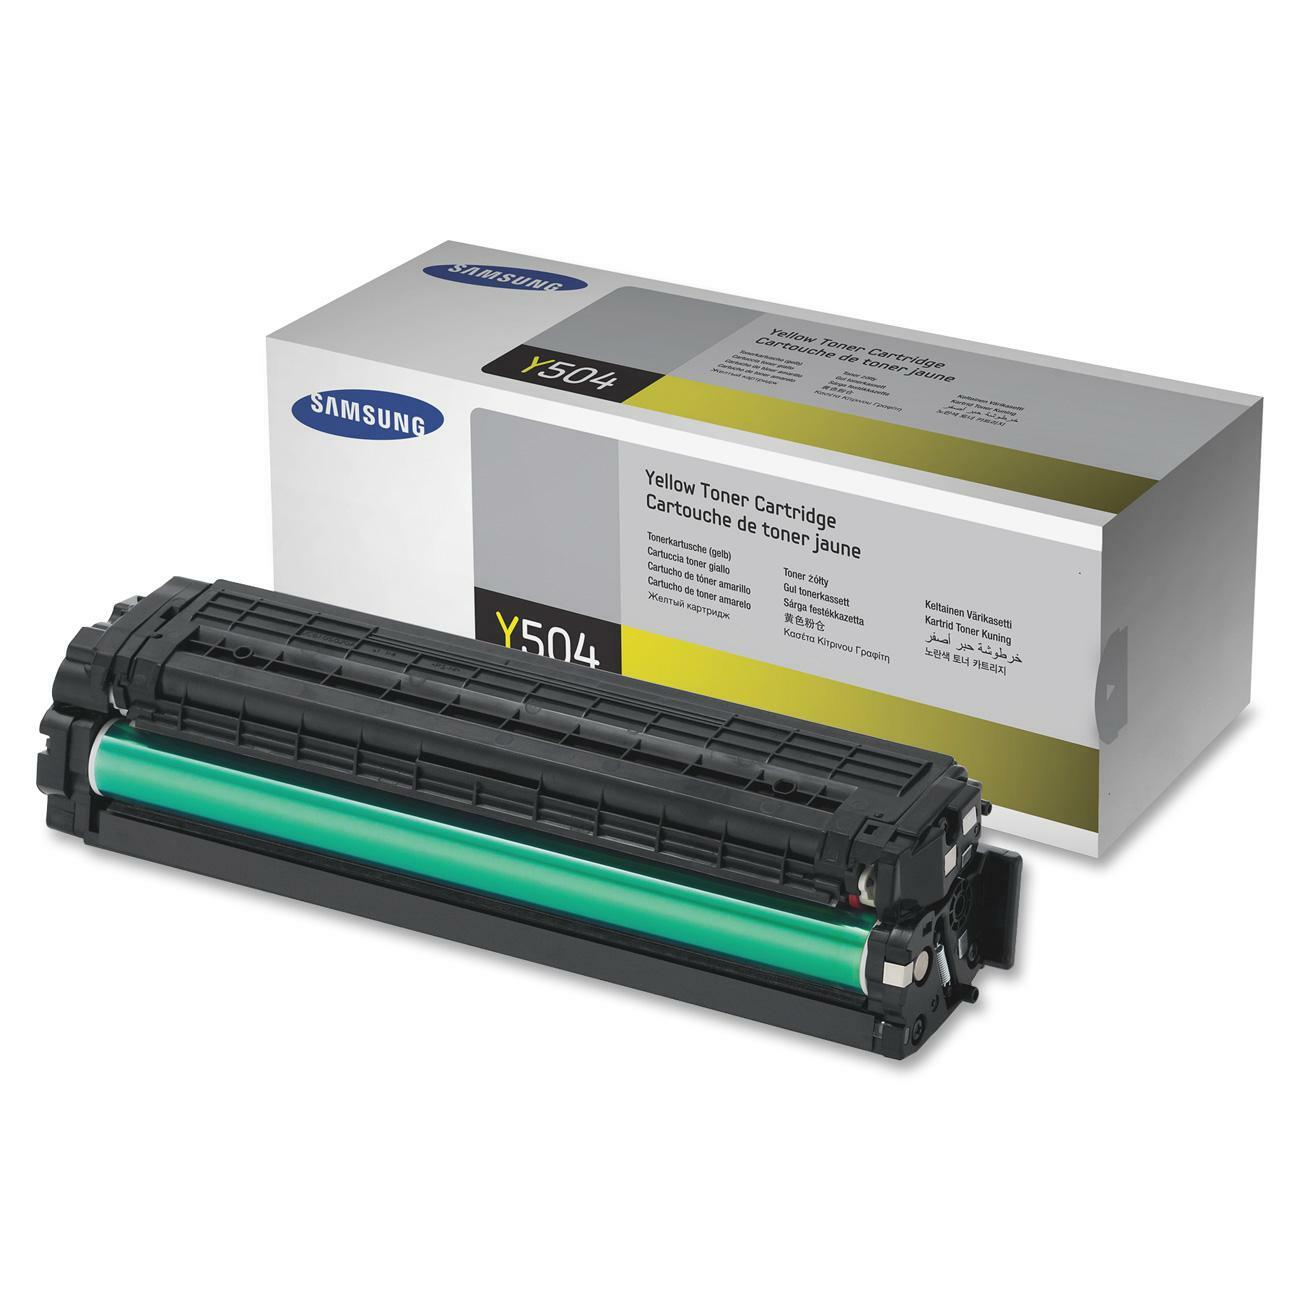 Samsung CLT-Y504S Toner Cartridge - Yellow